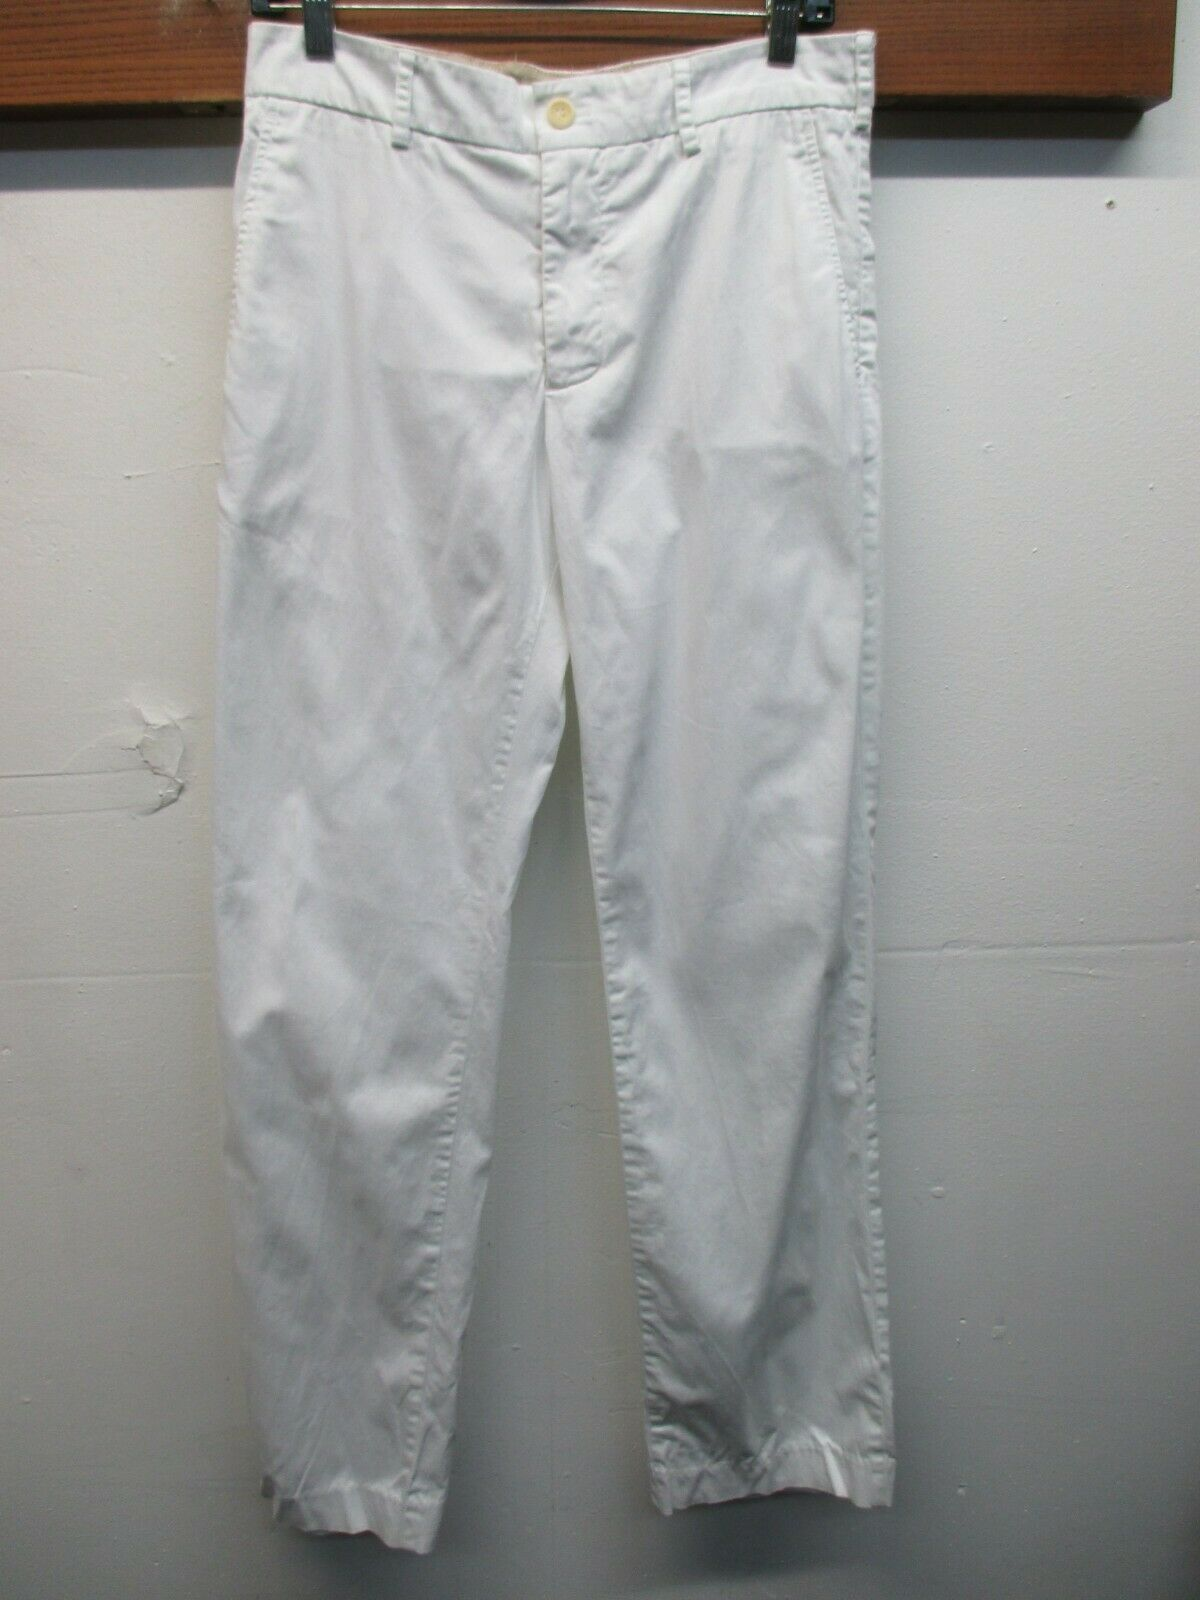 EUC Men's Bonobos Athletic Straight Cotton Blend Pants Size 31 White